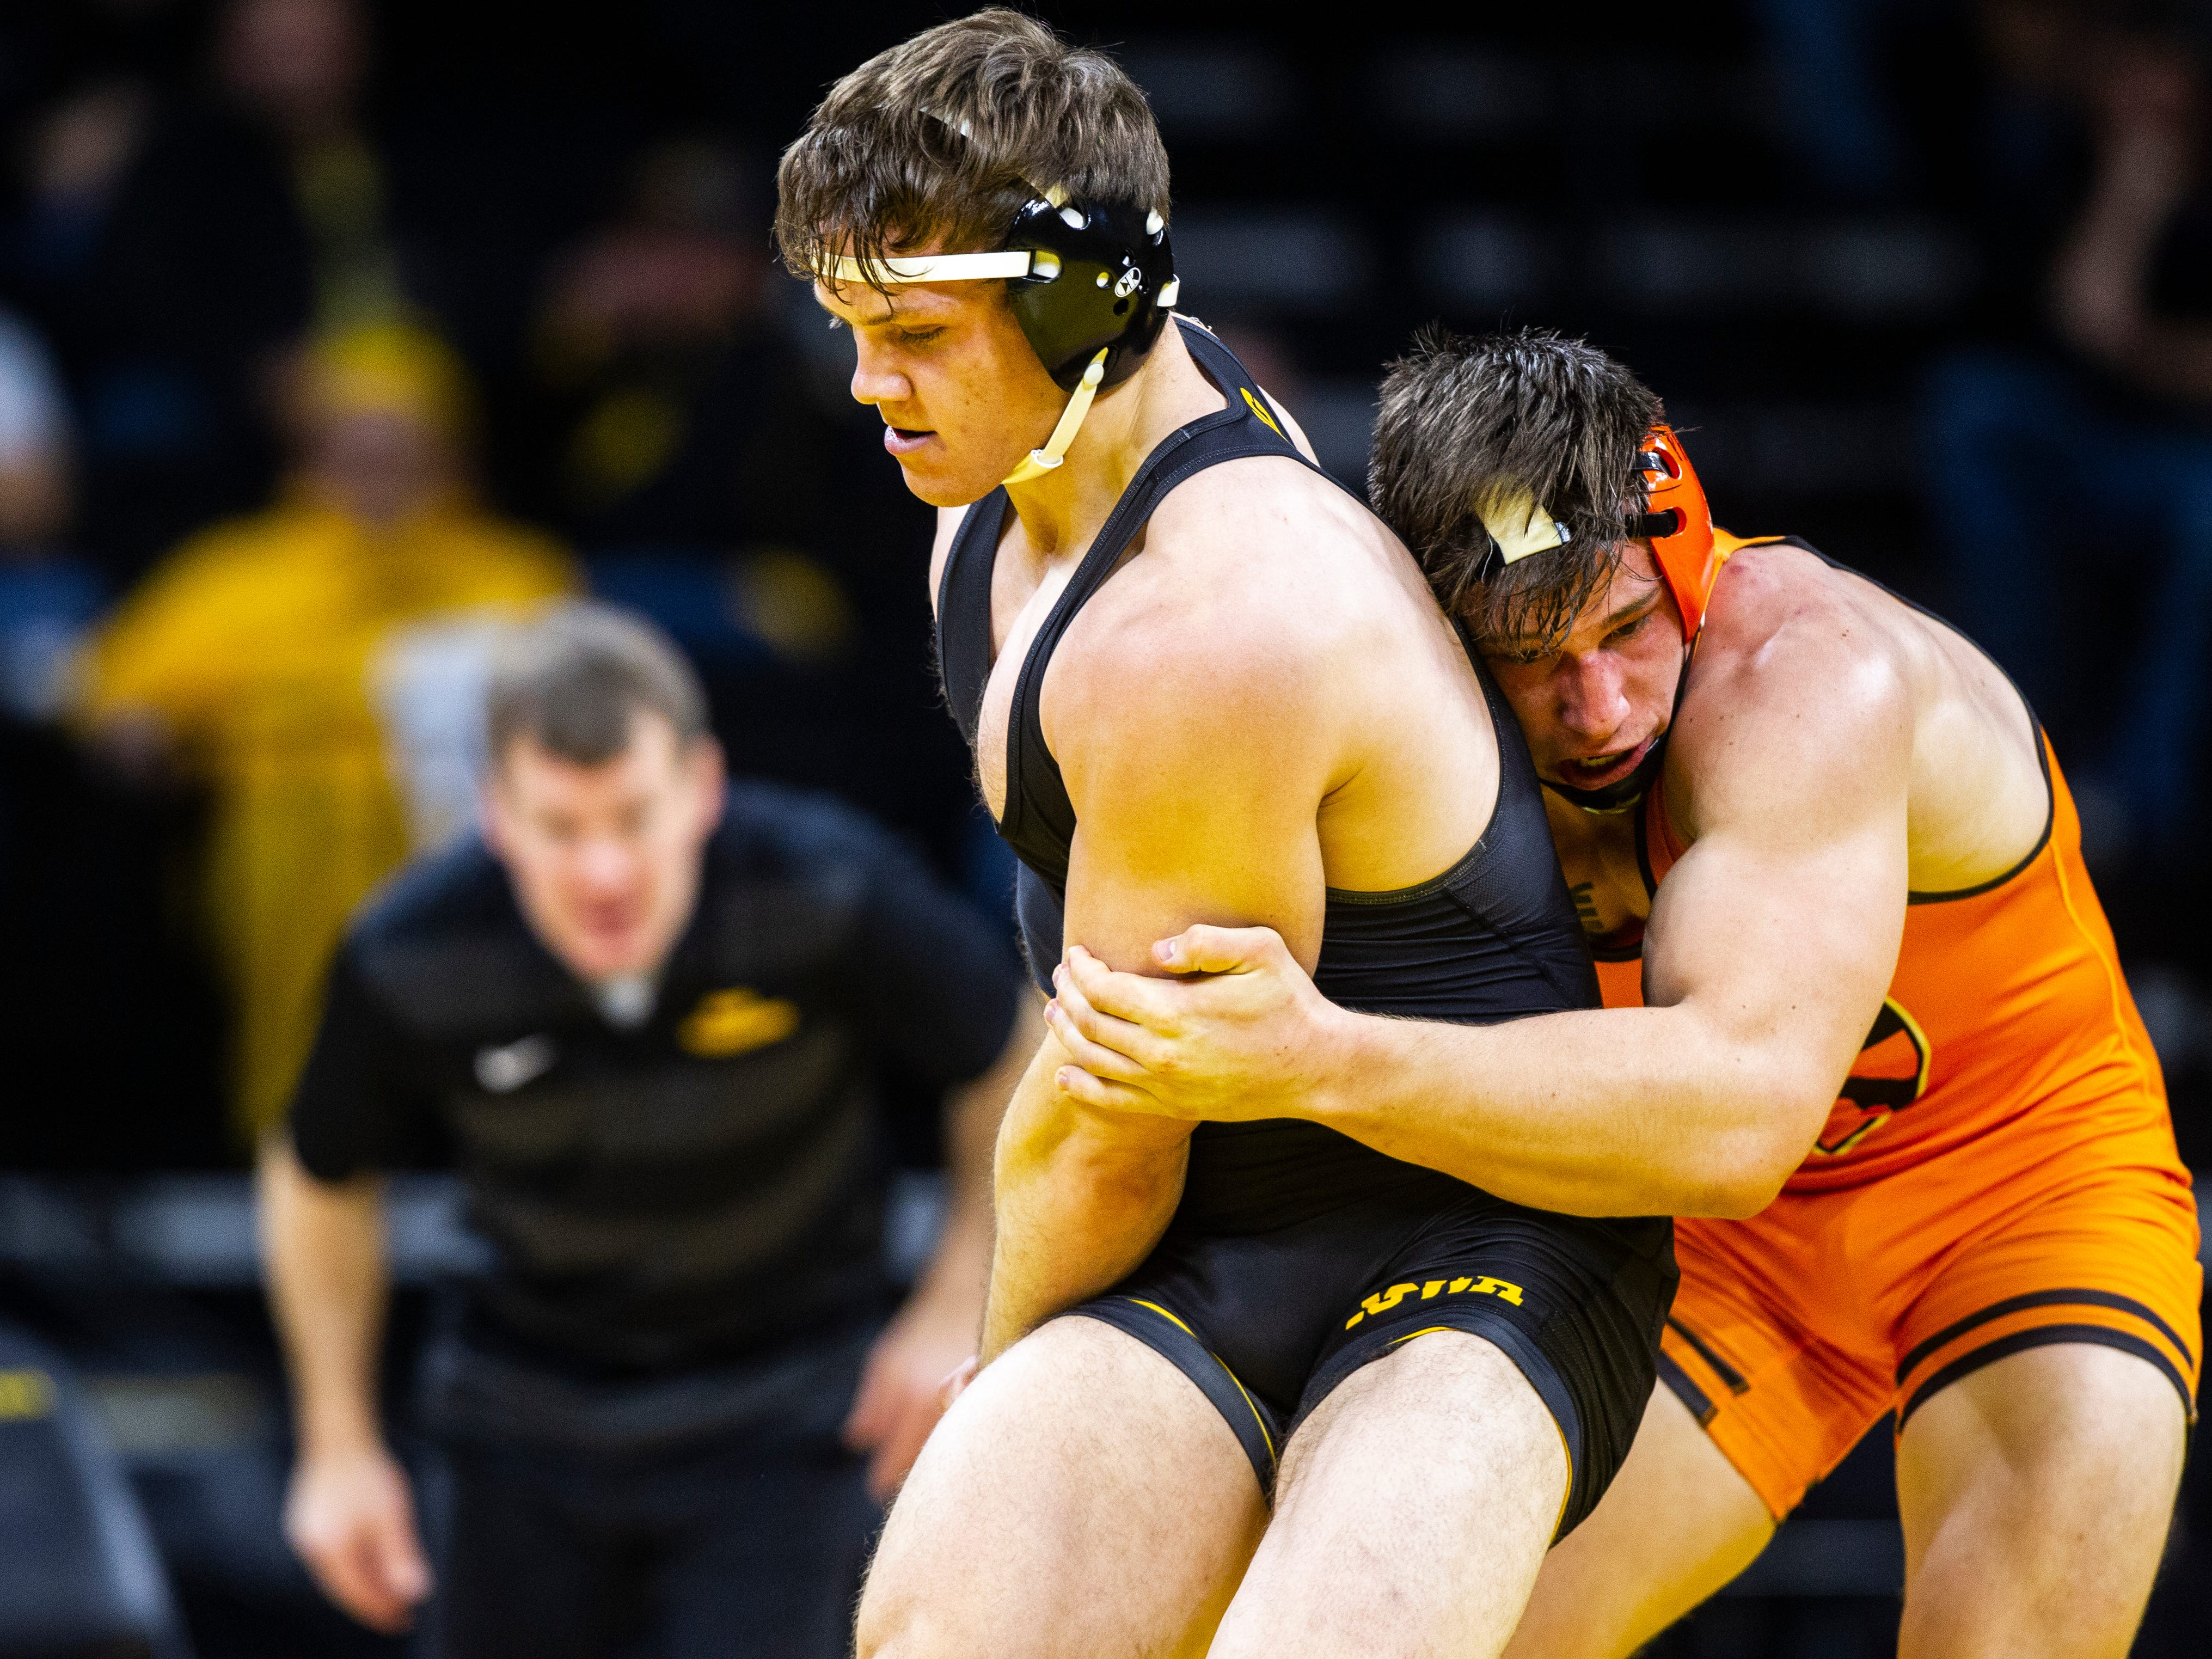 Iowa's Connor Corbin (left) wrestles Princeton's Patrick Brucki at 197 during an NCAA wrestle dual on Friday, Nov. 16, 2018, at Carver-Hawkeye Arena in Iowa City.